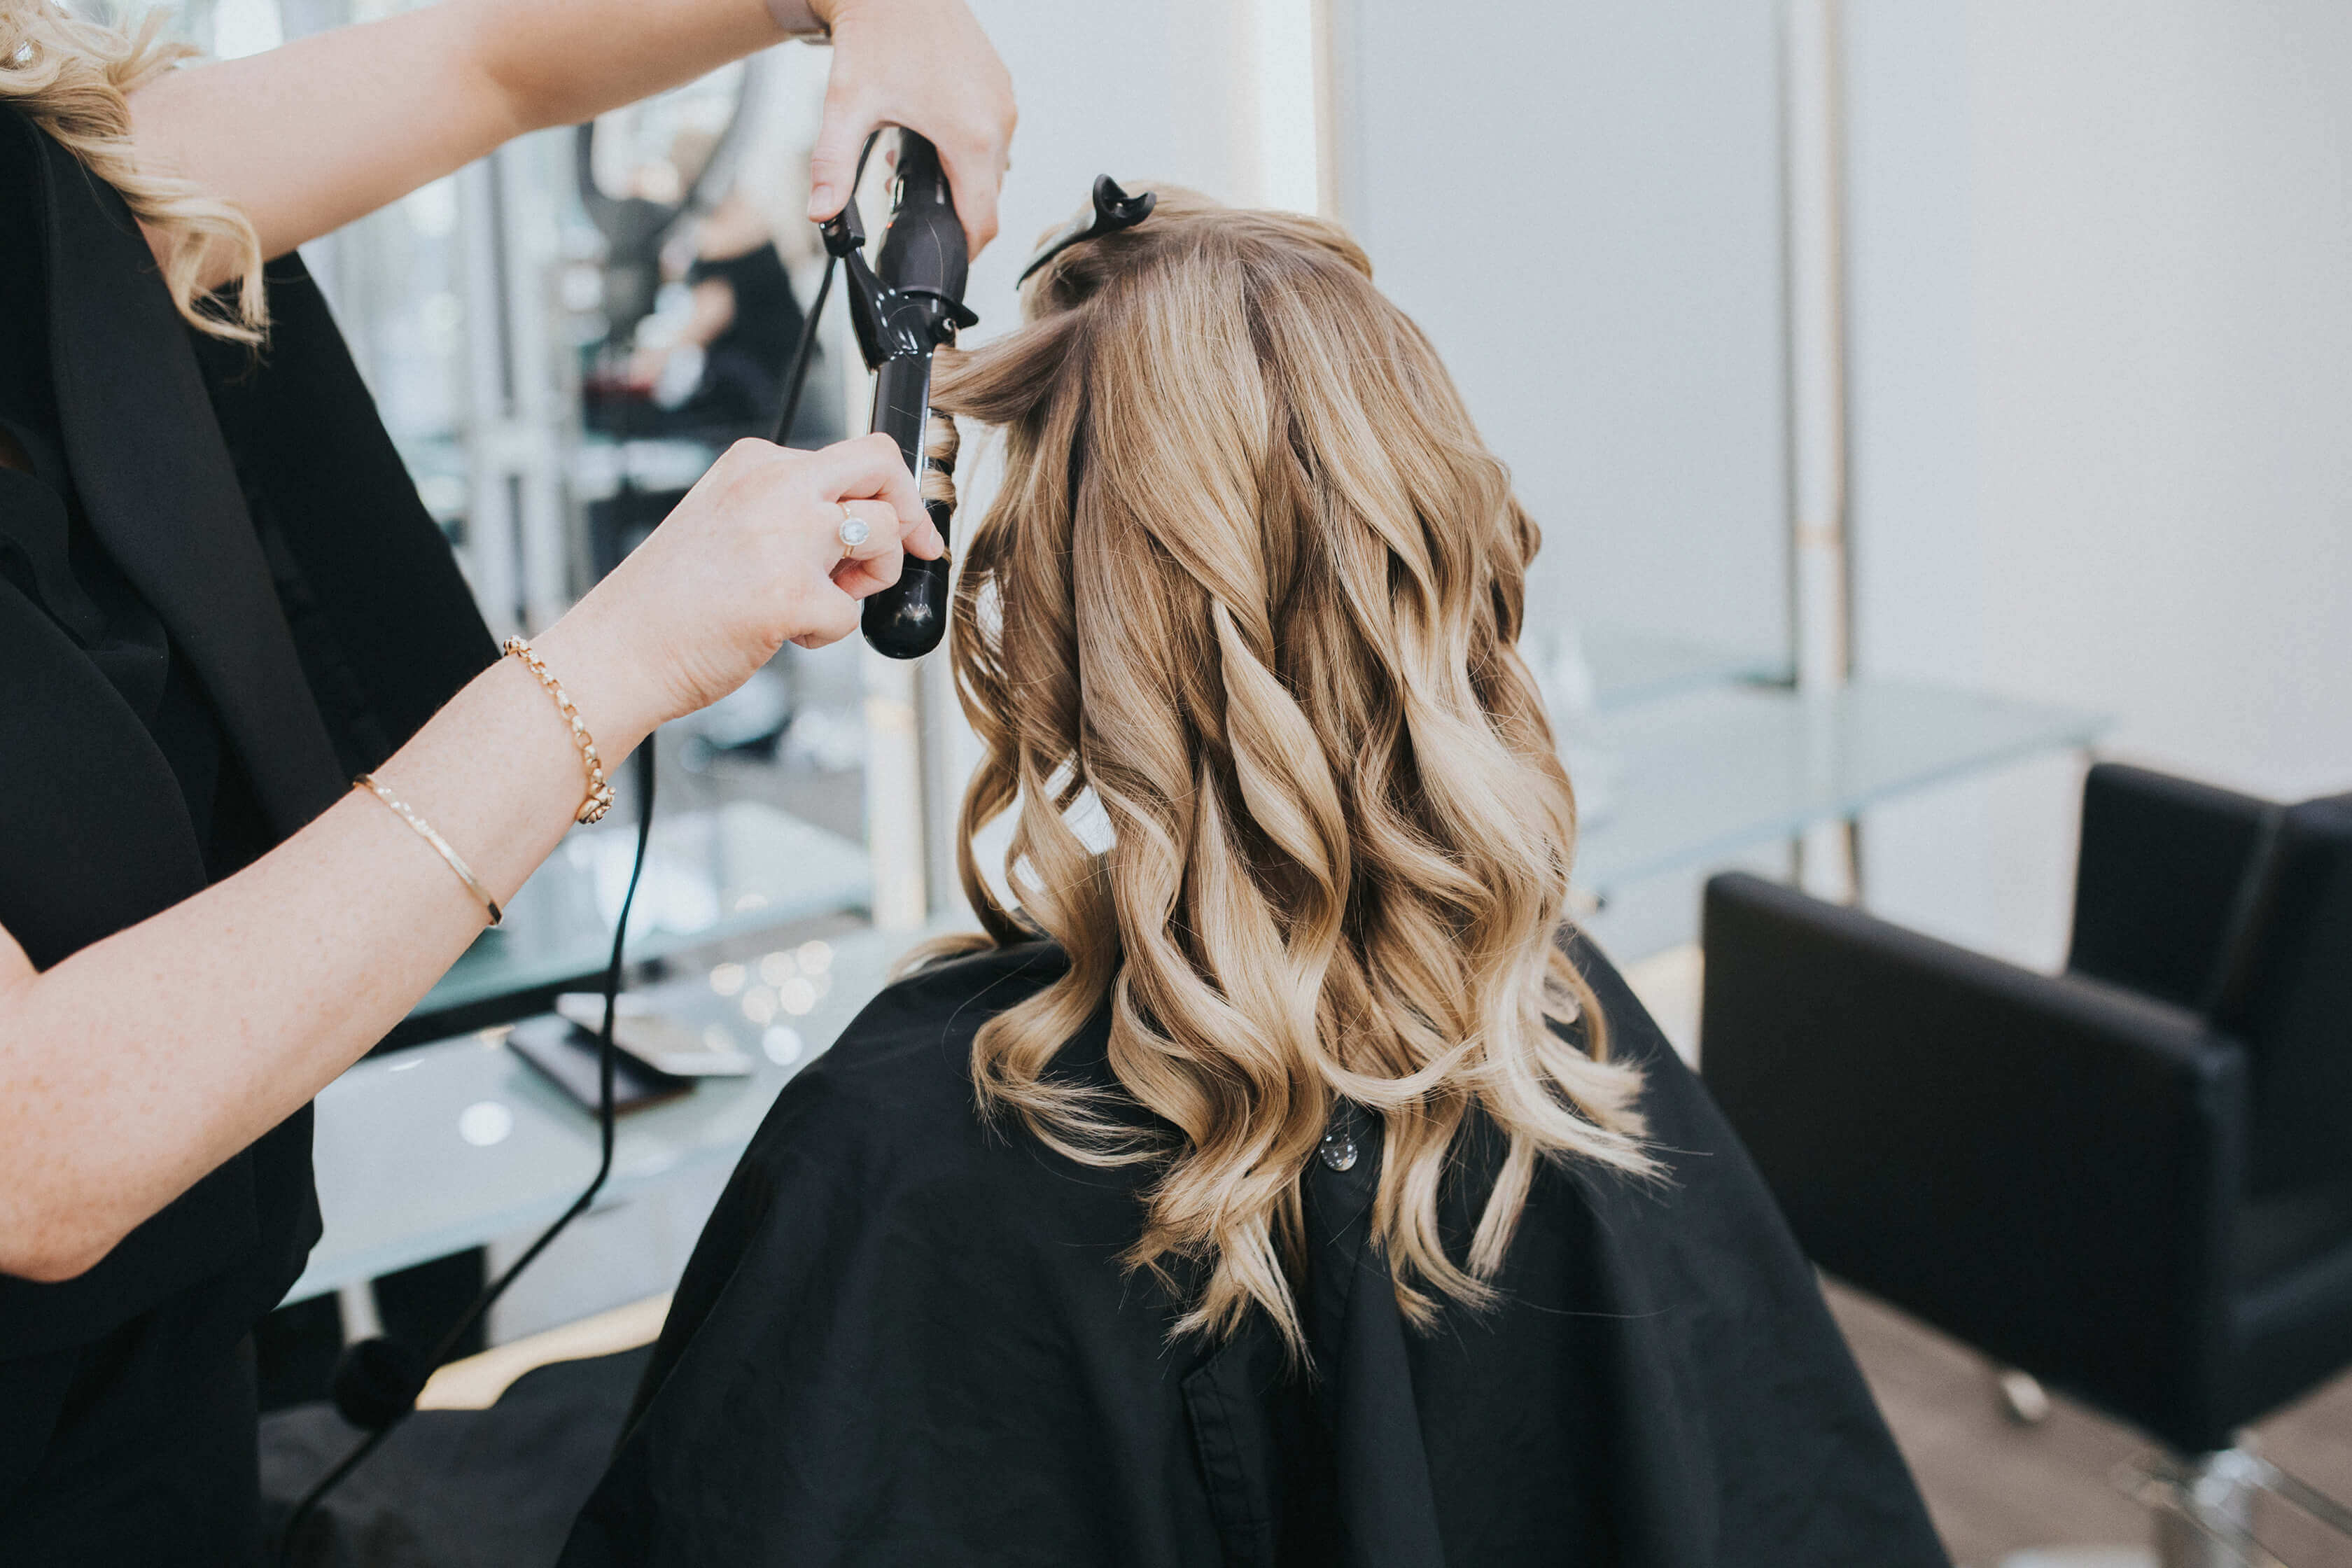 Best Salon Surrey Bc For All Hair And Skin Care